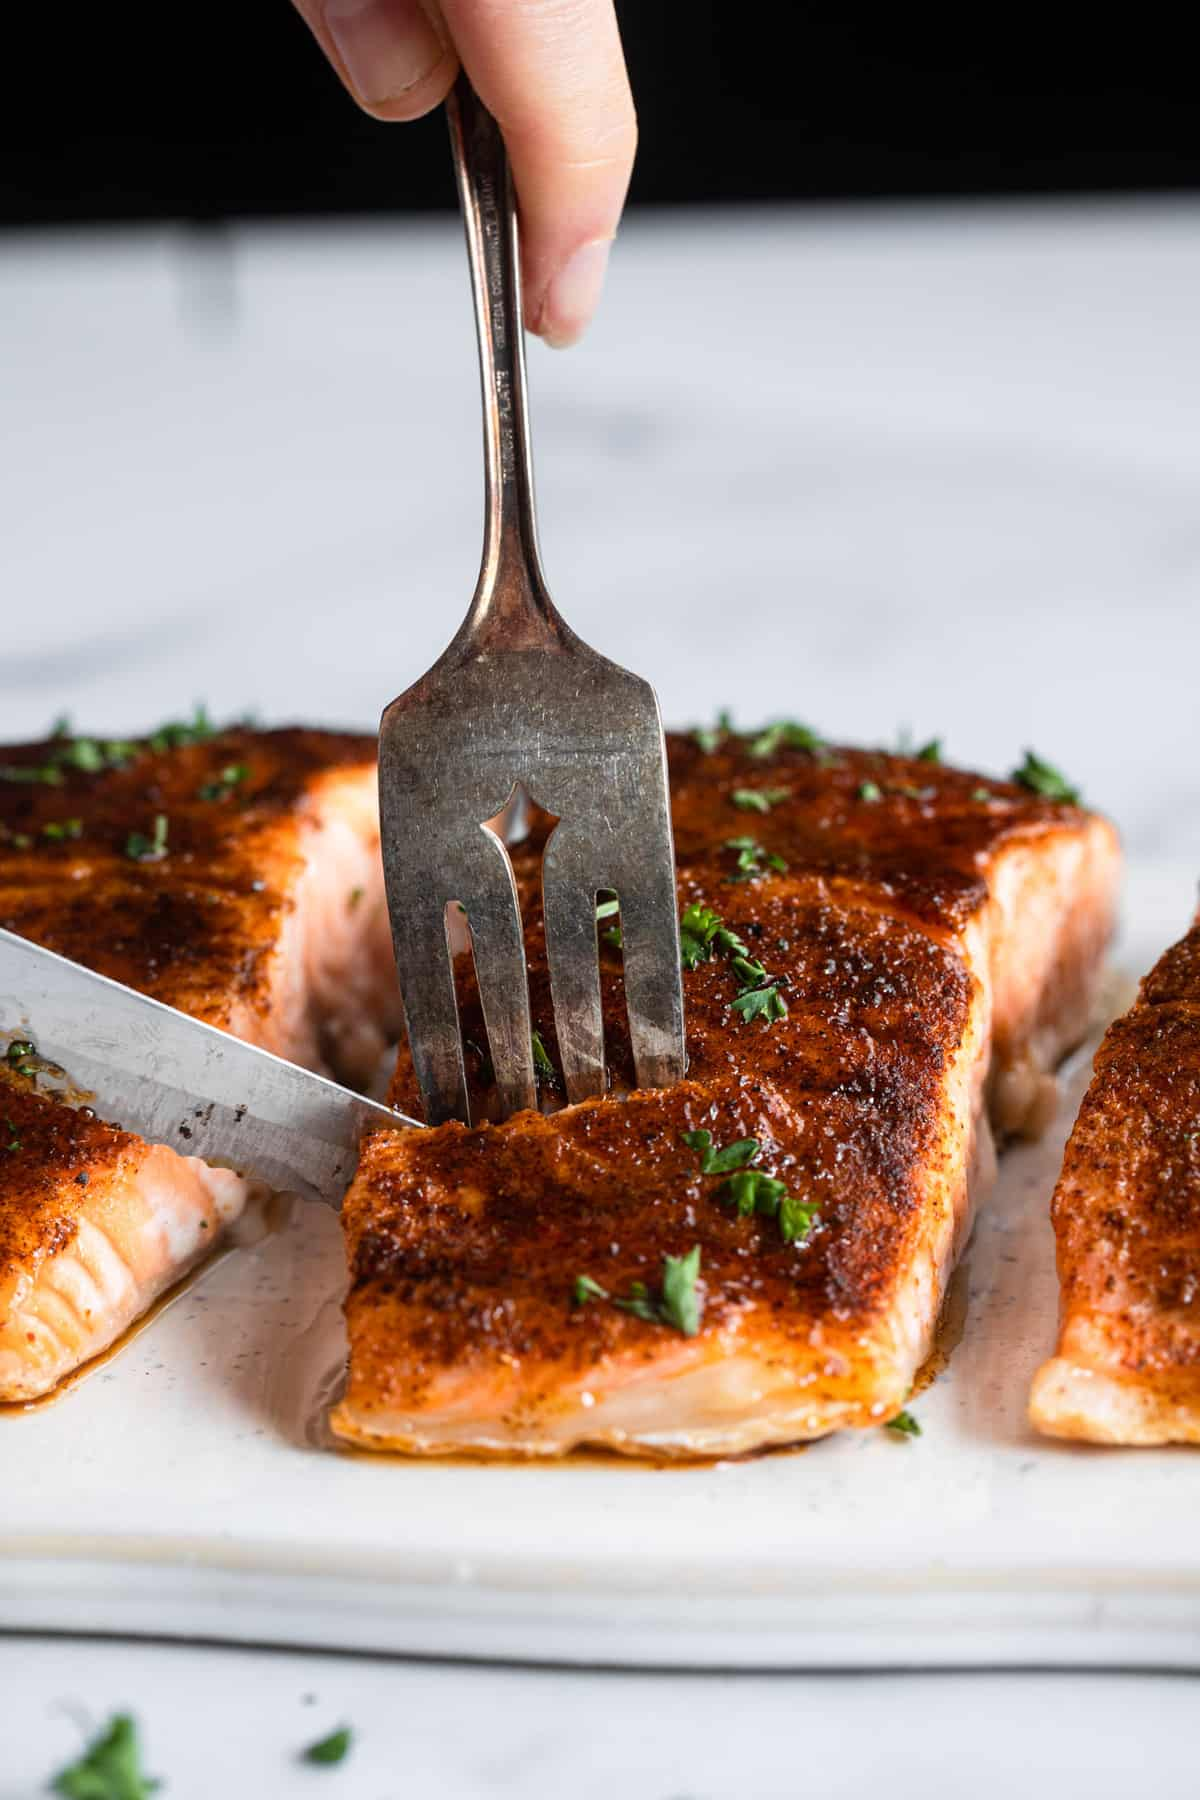 Honey Cajun Salmon being cut into with knife and fork